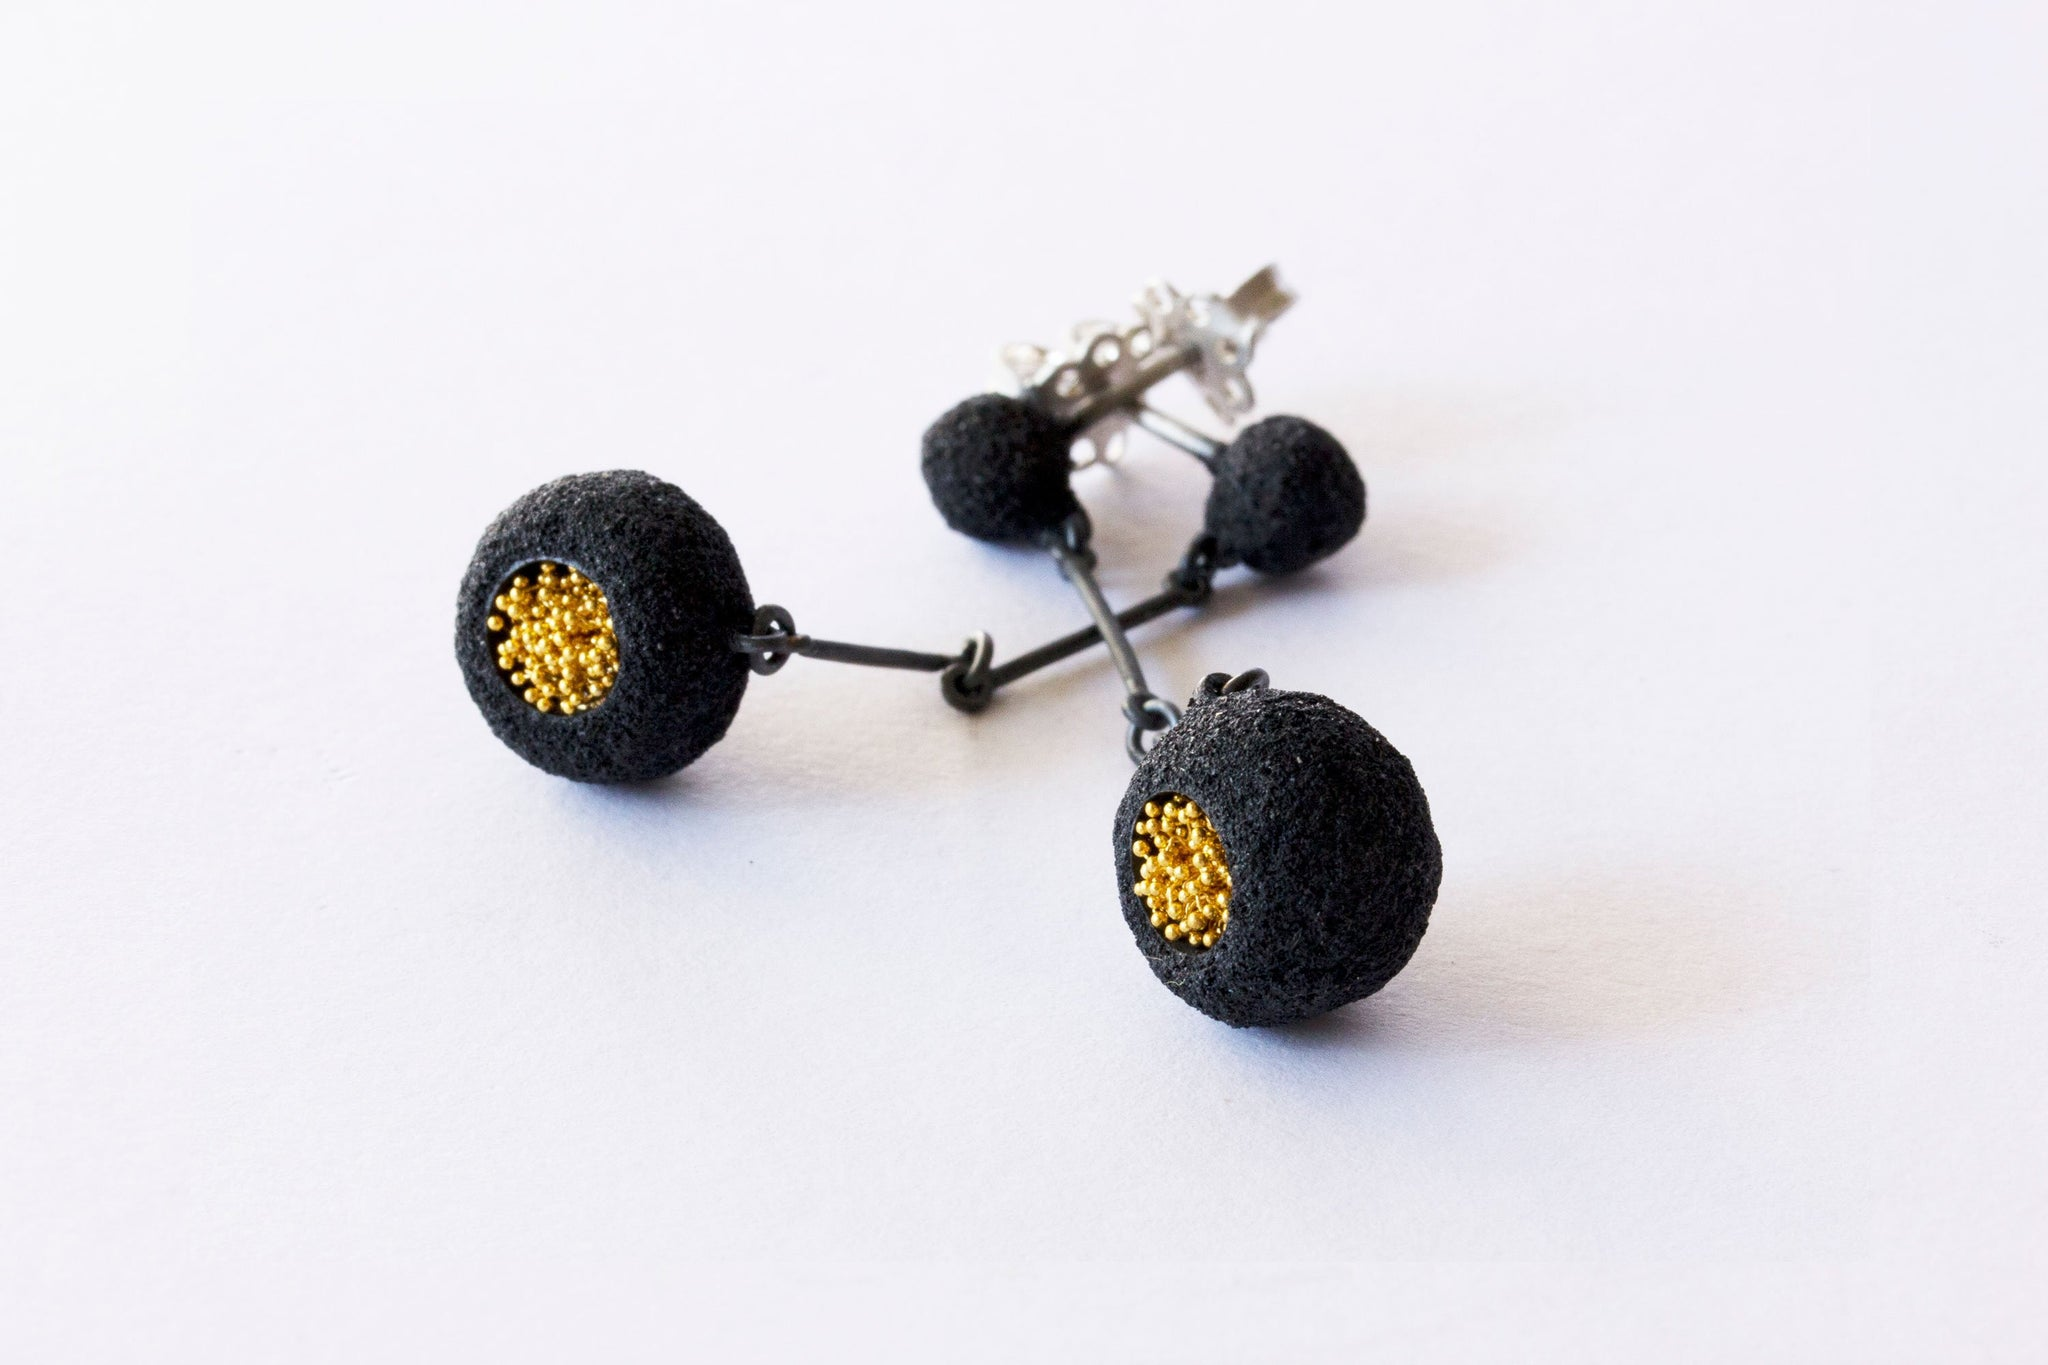 Oxidized Silver and Gold Keum-Boo Earrings - Lesetta